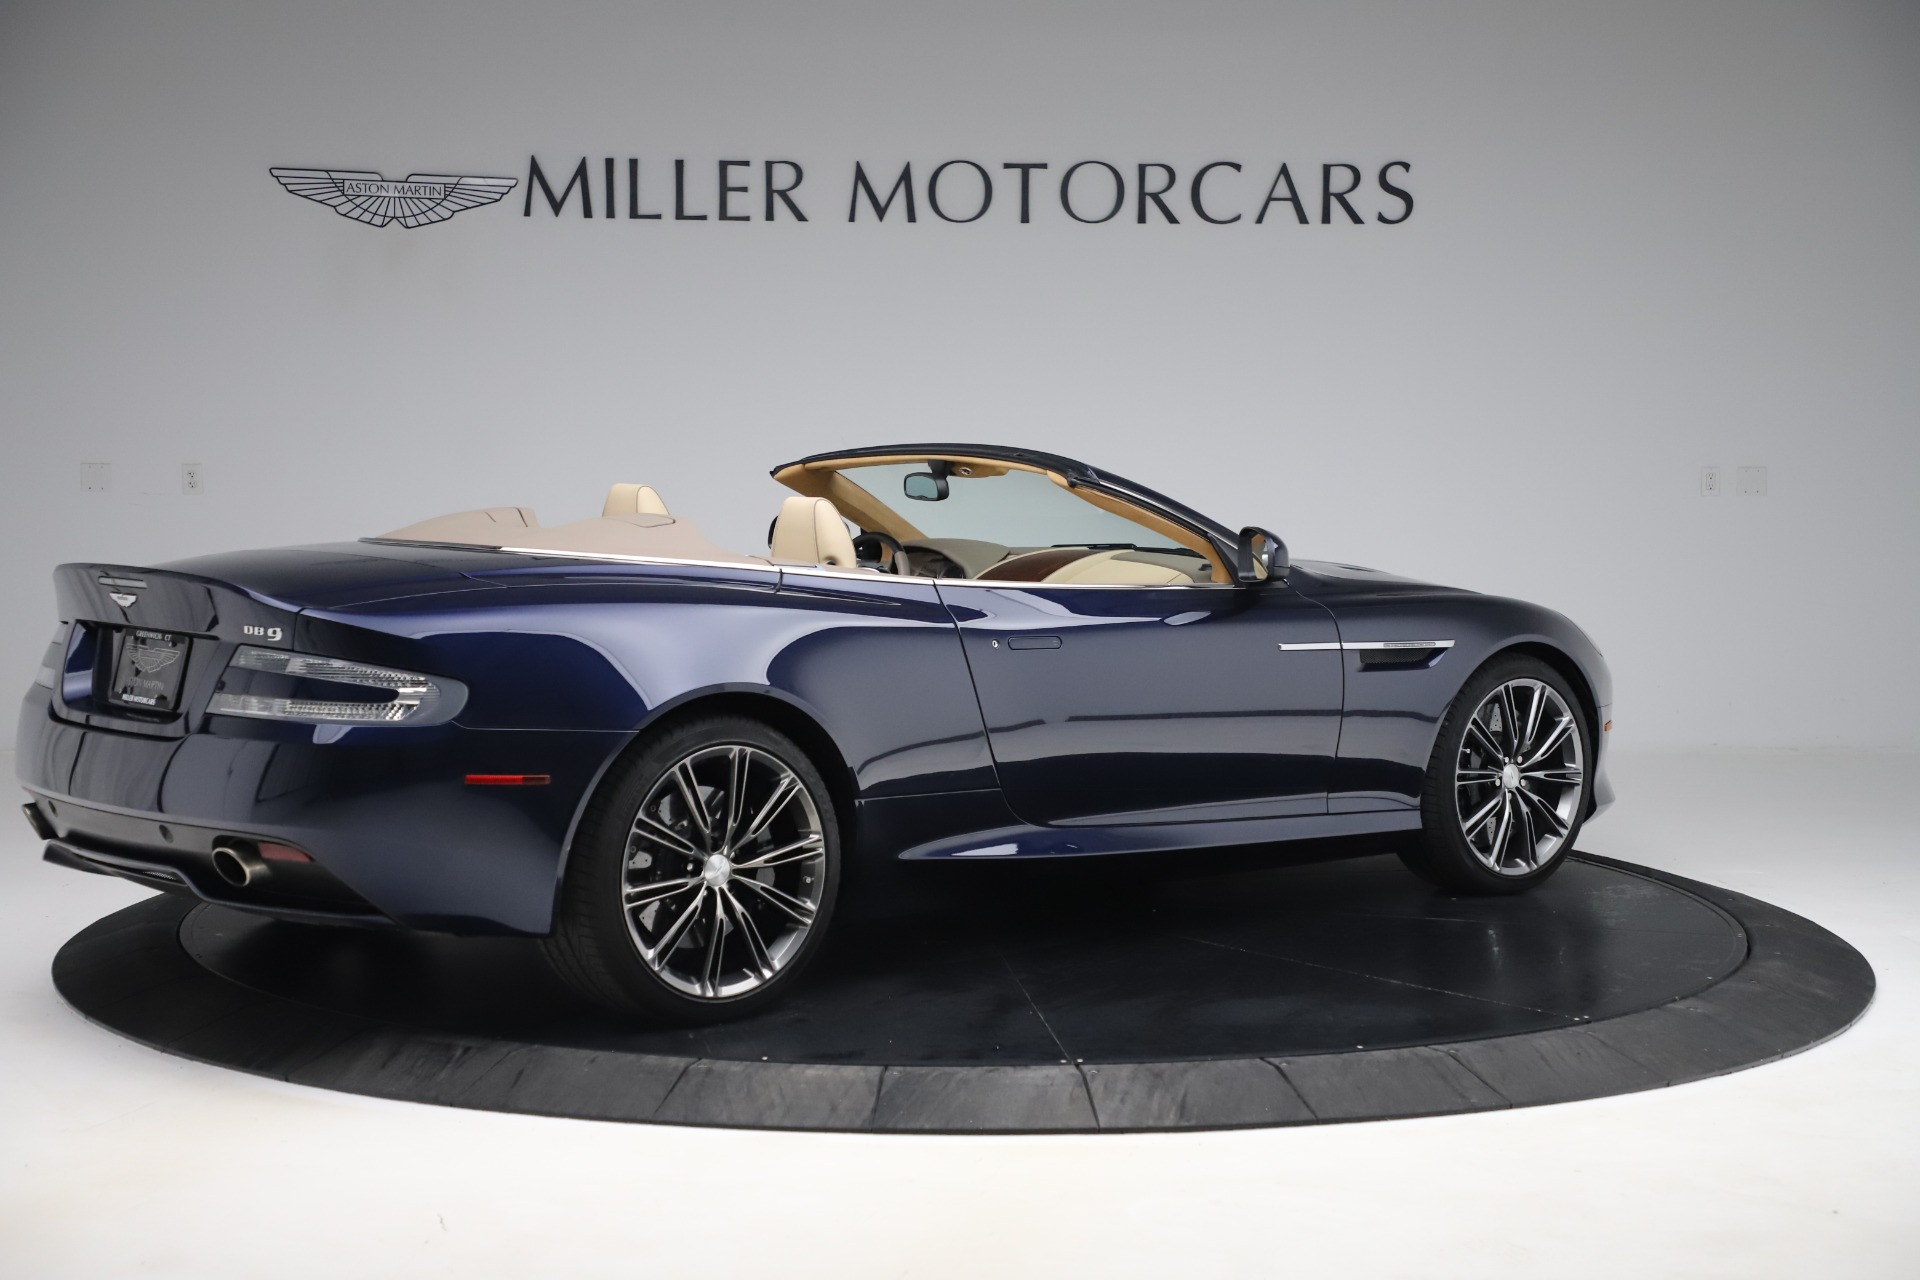 Used 2014 Aston Martin DB9 Volante For Sale In Westport, CT 3591_p8